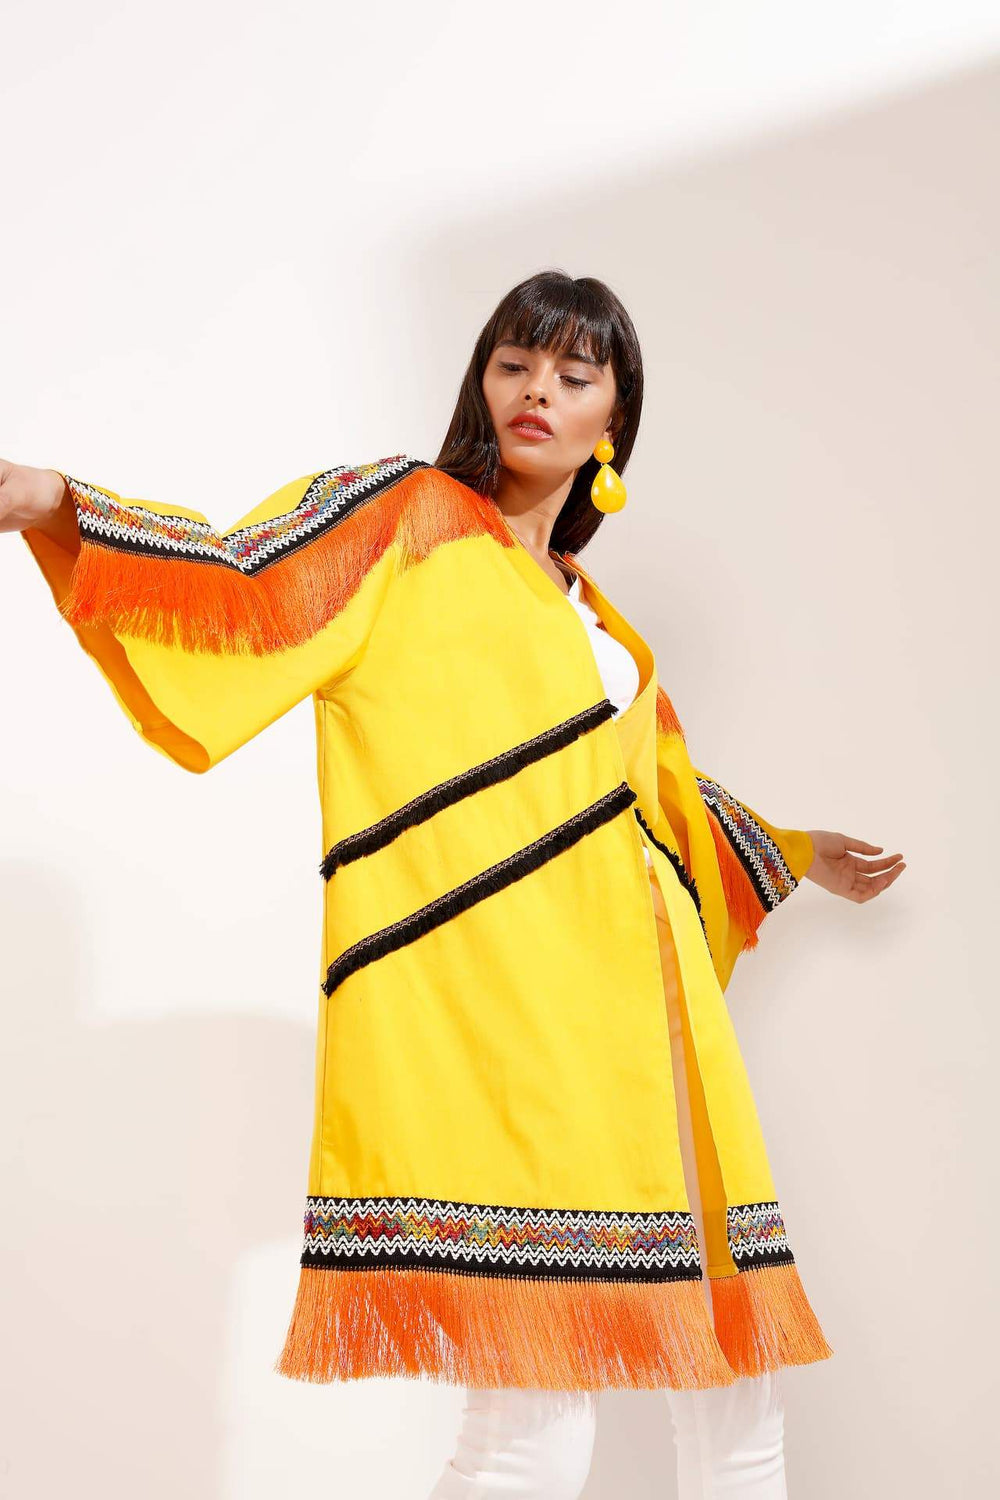 Store WF Orange Tasseled Fashionable Yellow Kimono Modest Loose Fitting Open Front Kimono with Stripes and Fringe in 100% Cotton